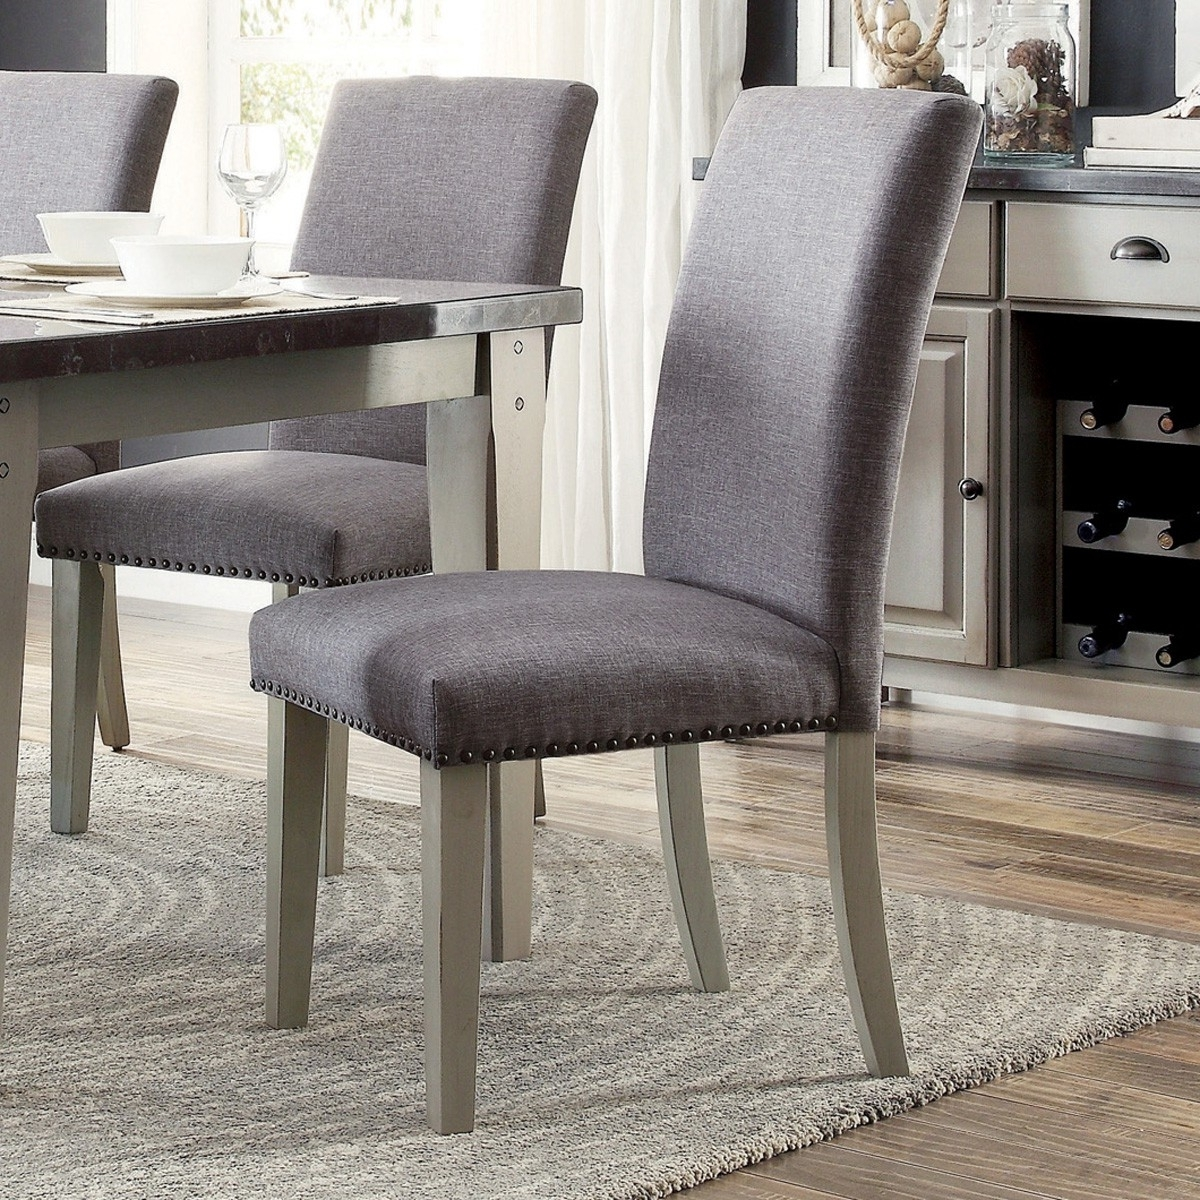 Grady Side Chairs Intended For Favorite Mendel Grey Side Chair (Set Of 2) For $ (View 6 of 20)